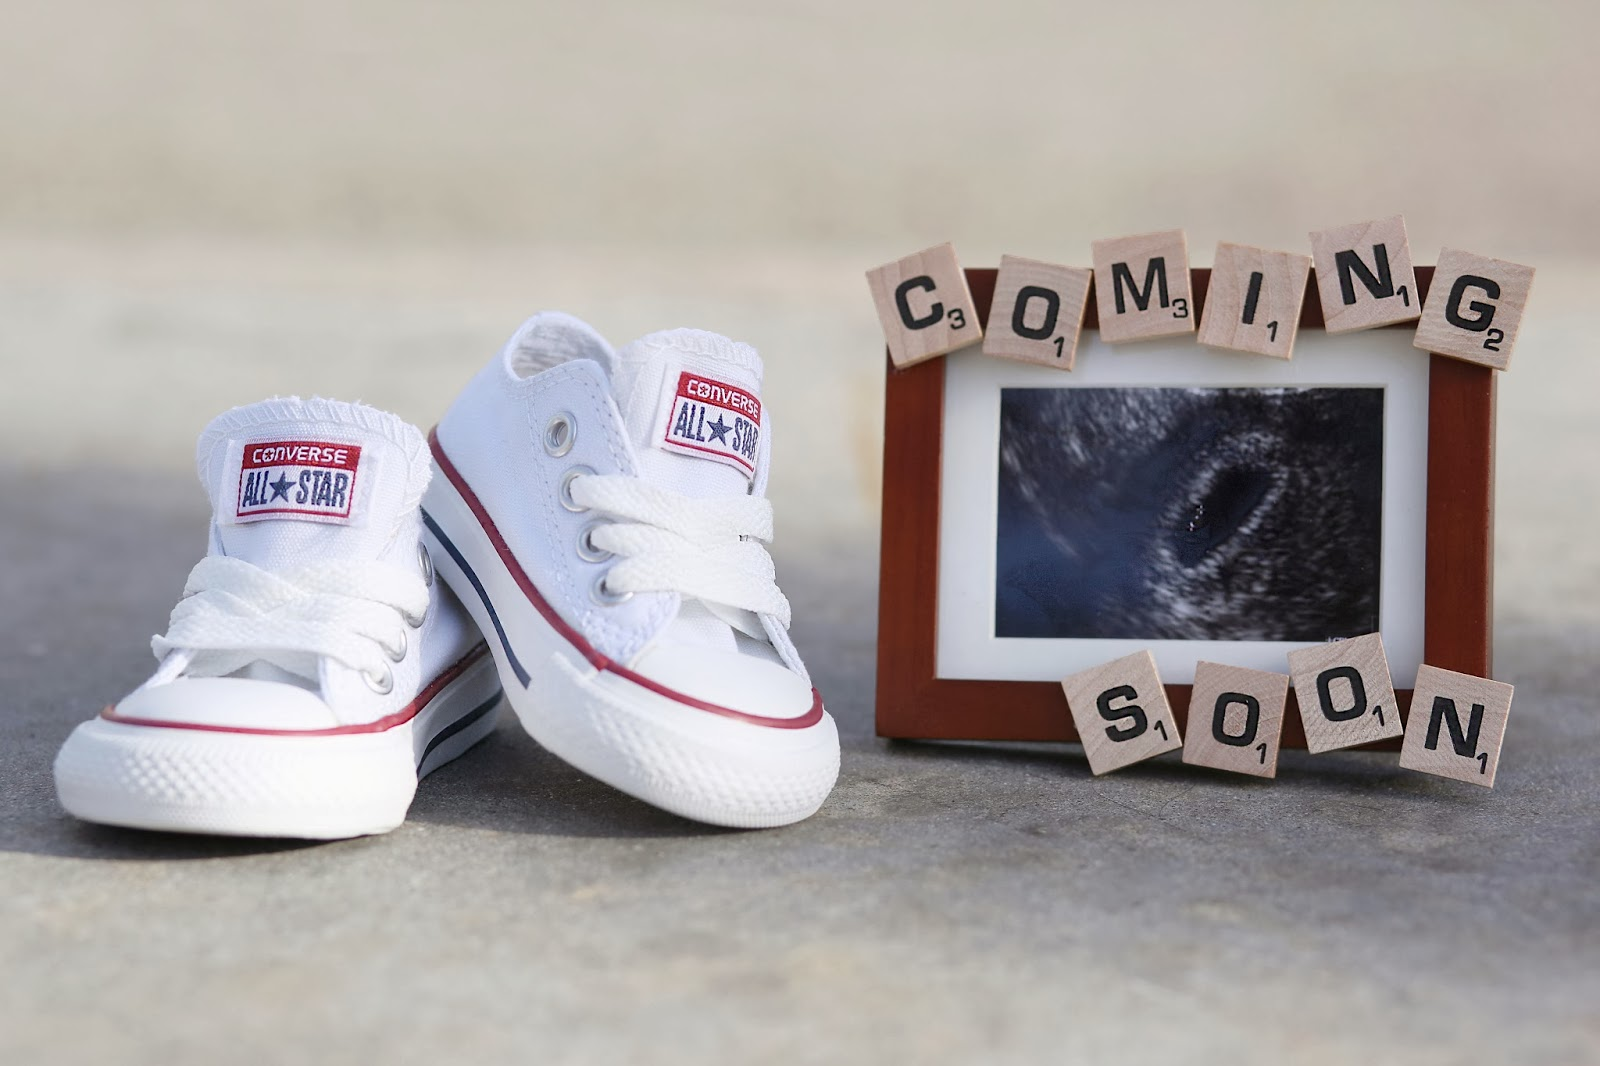 Baby on the way announcement Jenn Manny – Baby on the Way Announcement